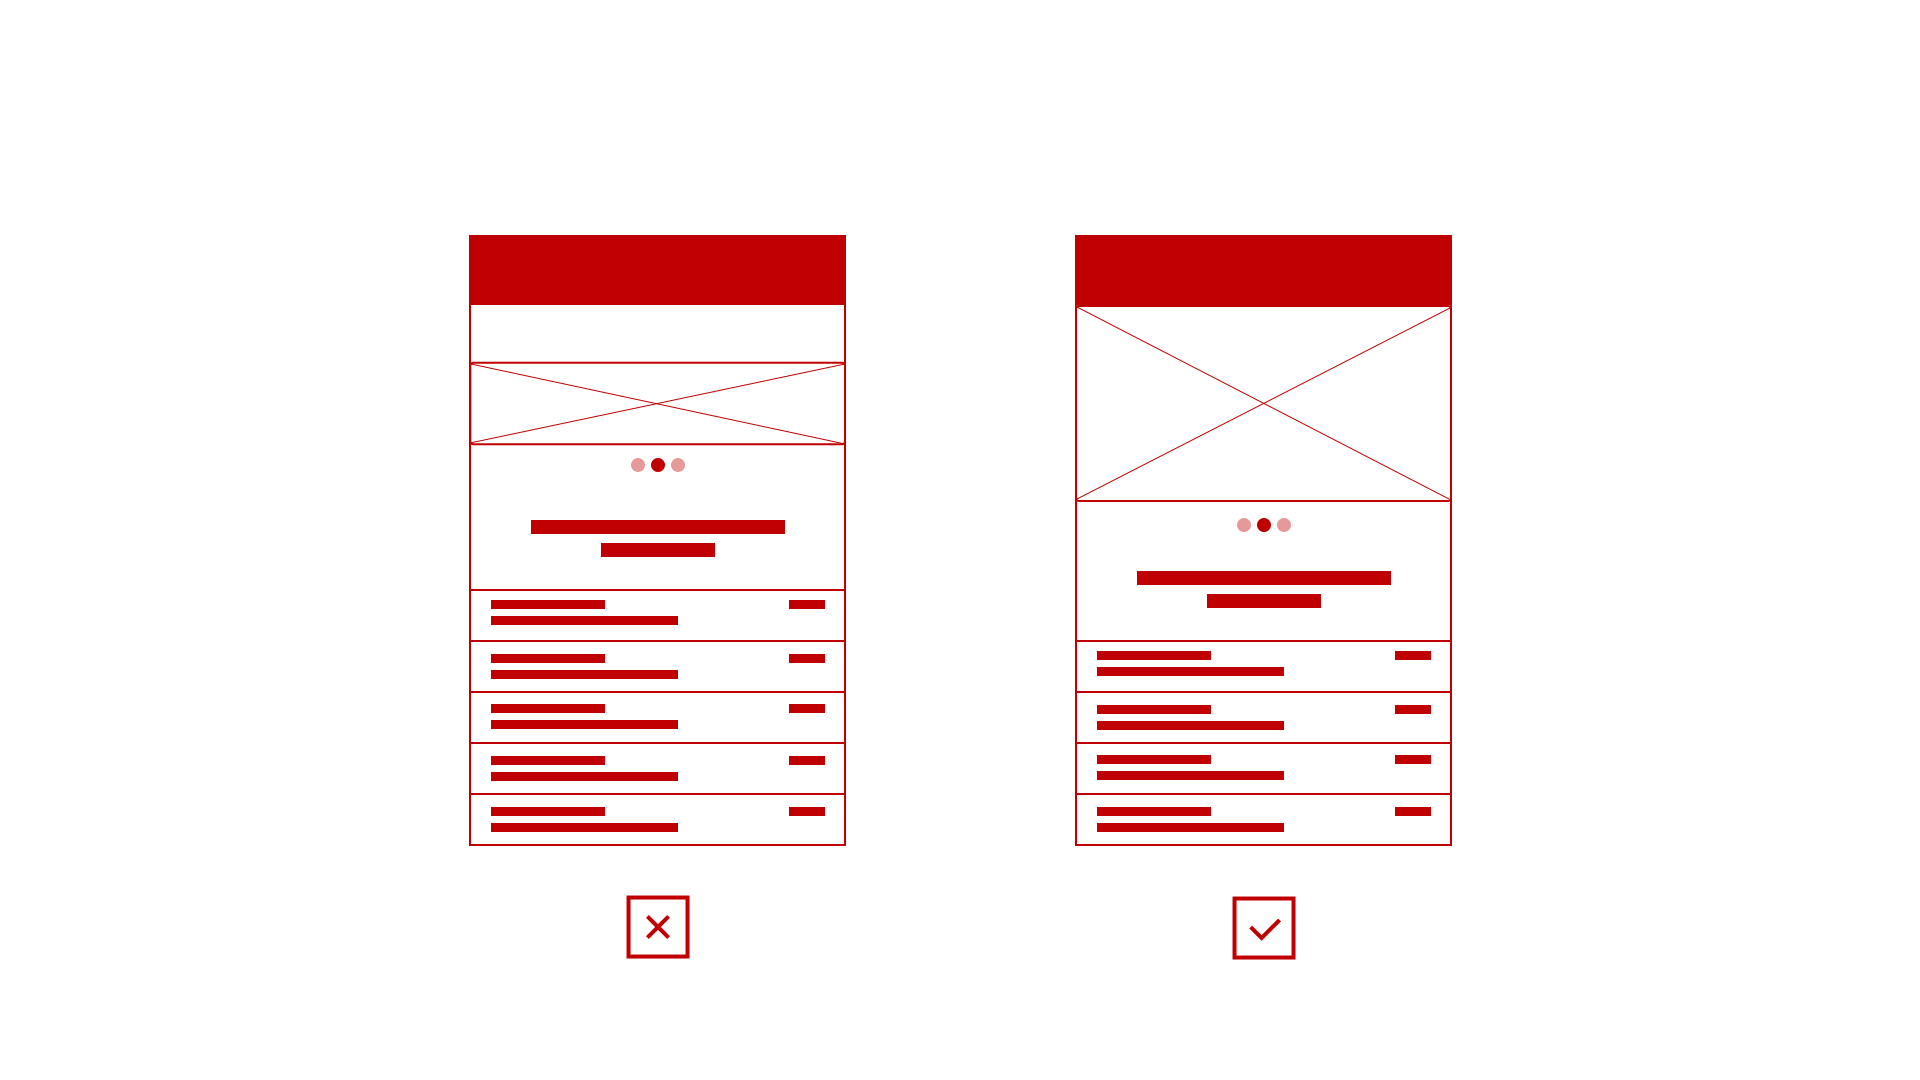 Use of heavy images on mobile devices reflects on slow loading pages, its best to reduce or optimise images for mobile devices.